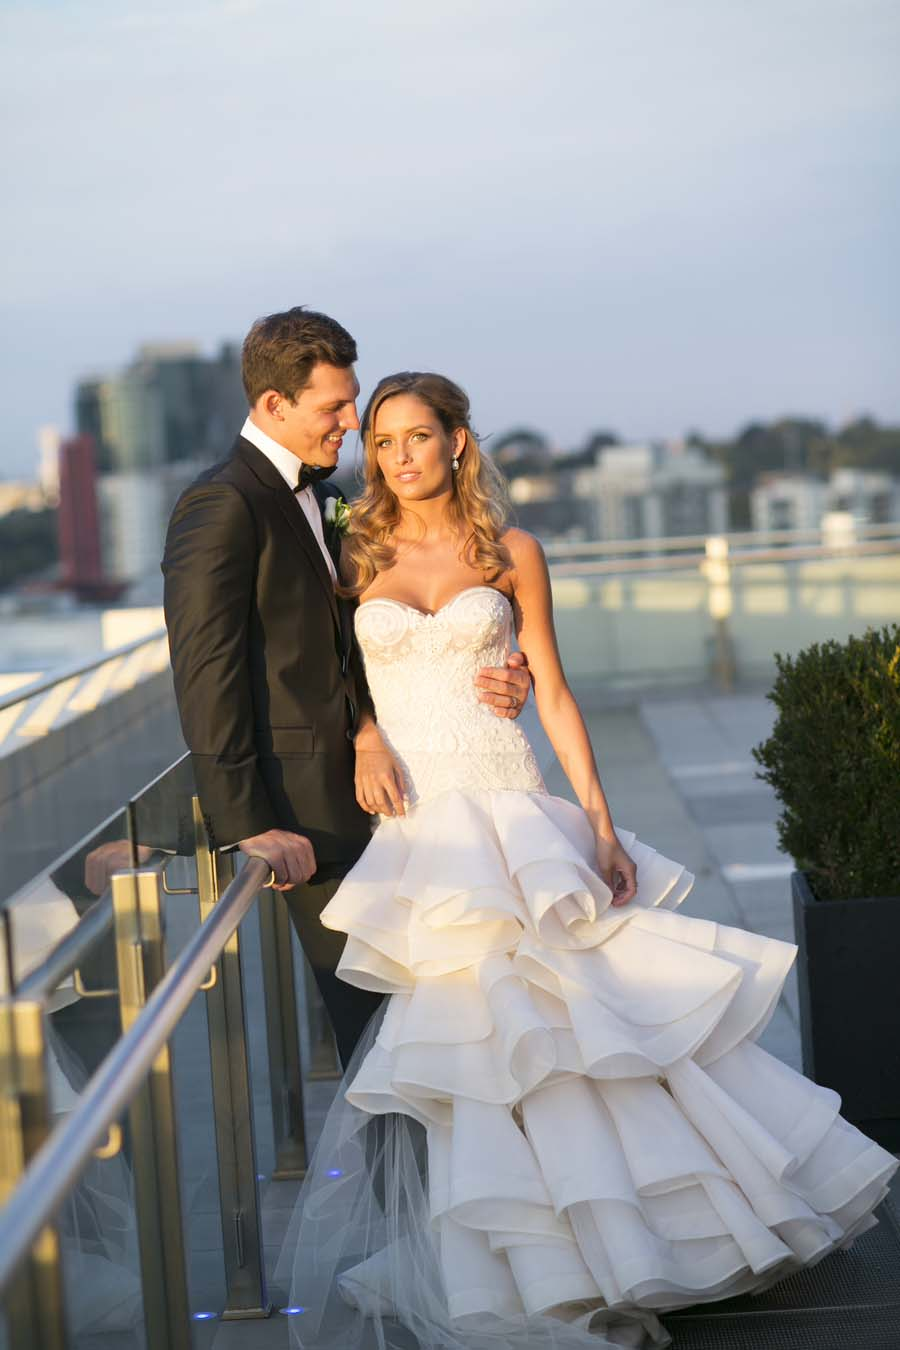 Classic & Timeless Melbourne Wedding With EPIC Flower Wall: Luke & Madeline